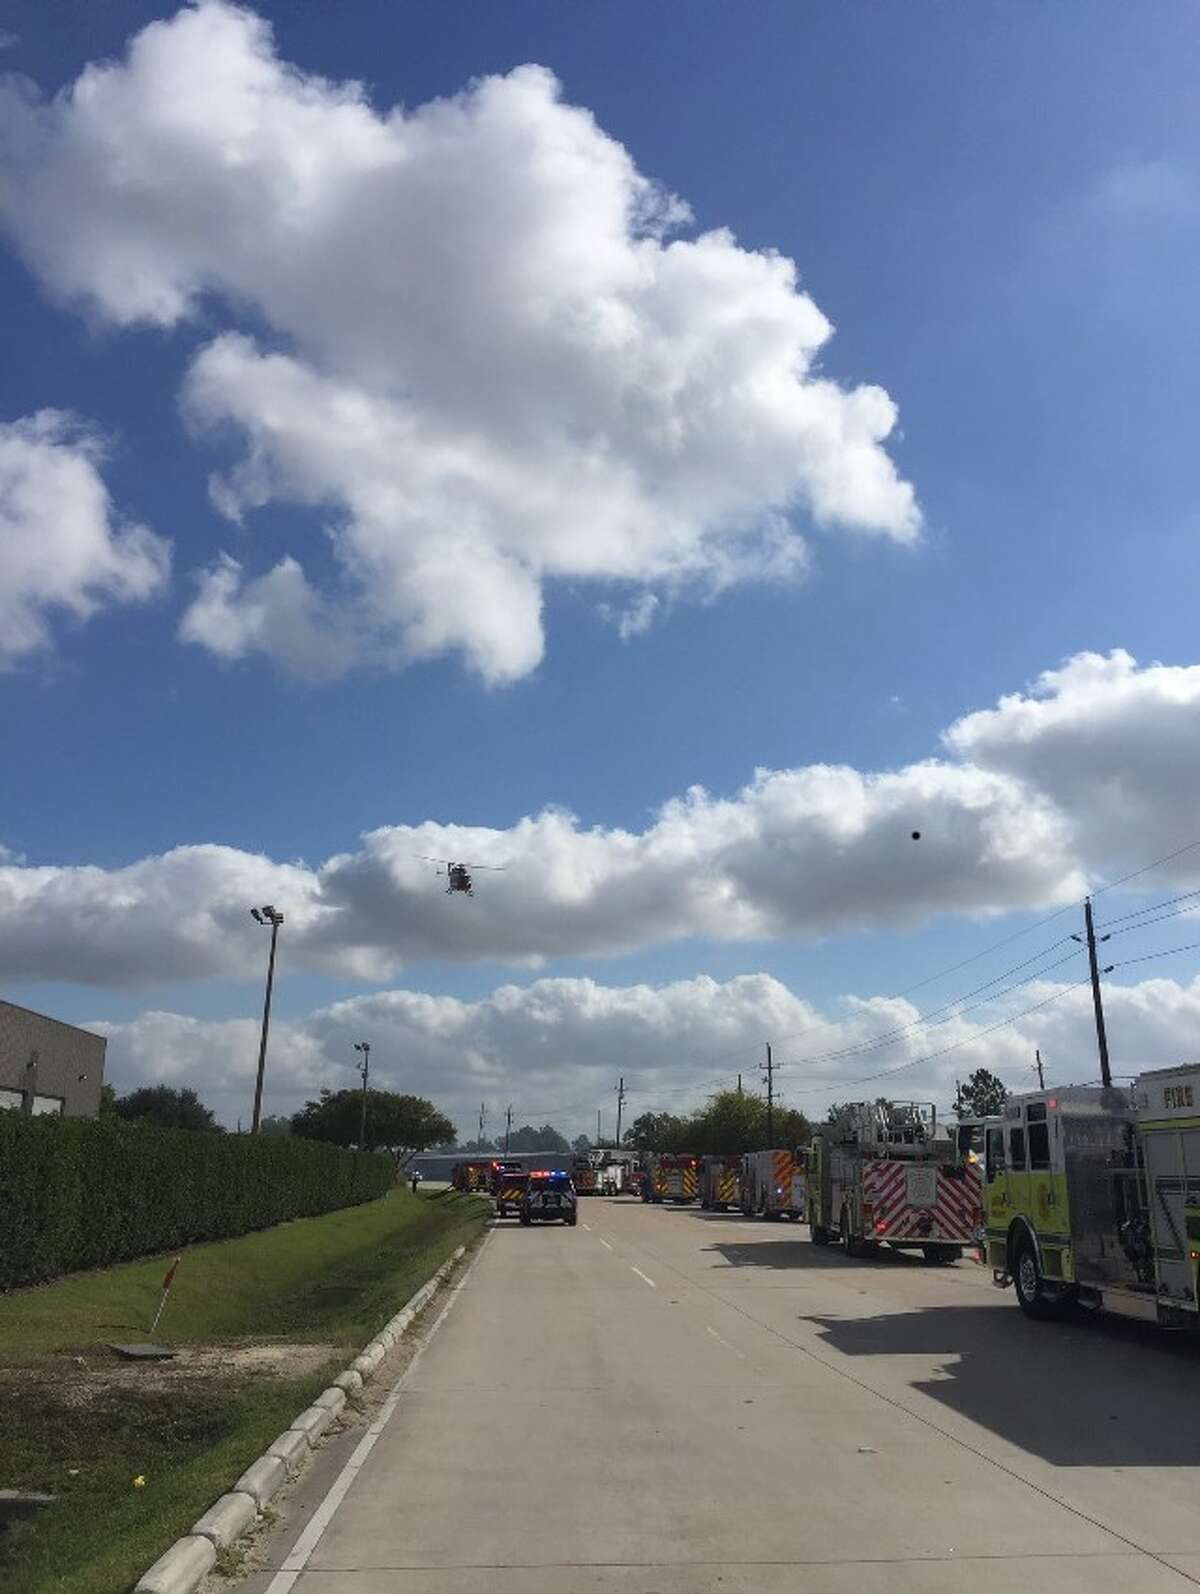 An employee was taken to the hospital by helicopter with severe burns Monday after an explosion at B.J. Hooker's, a North Harris County vodka distillery.